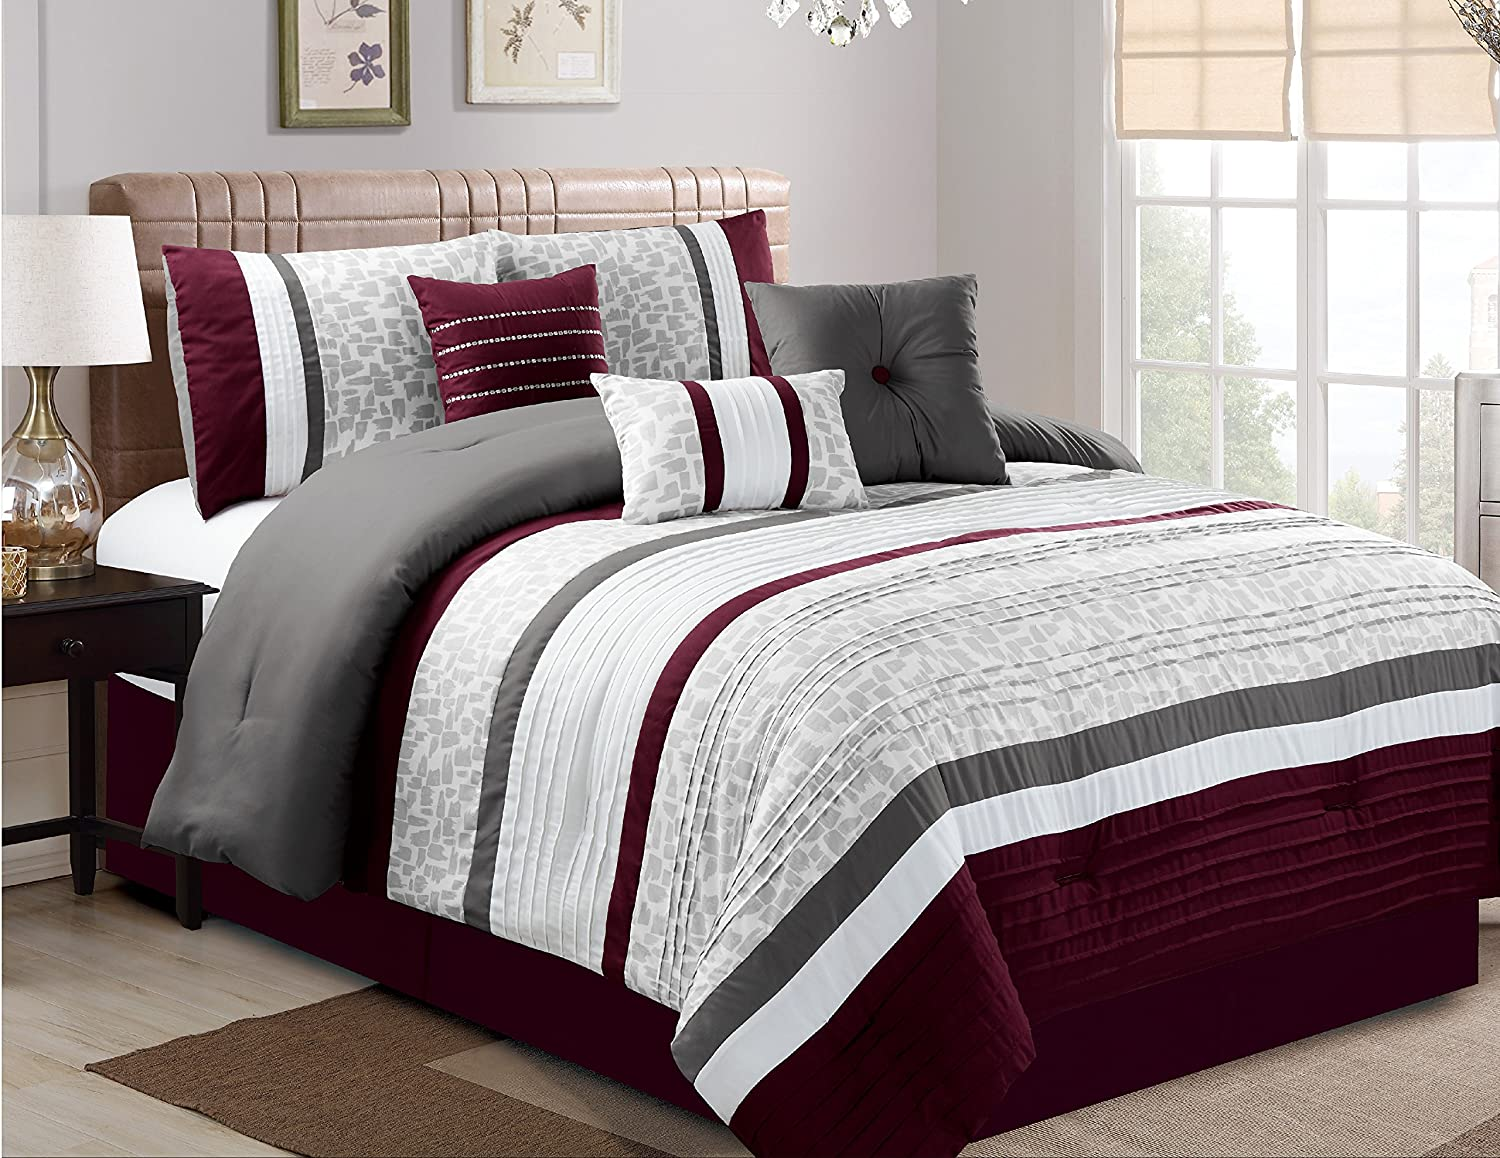 Amazoncom Luxlen 7 Piece Luxury Bedding Set California King